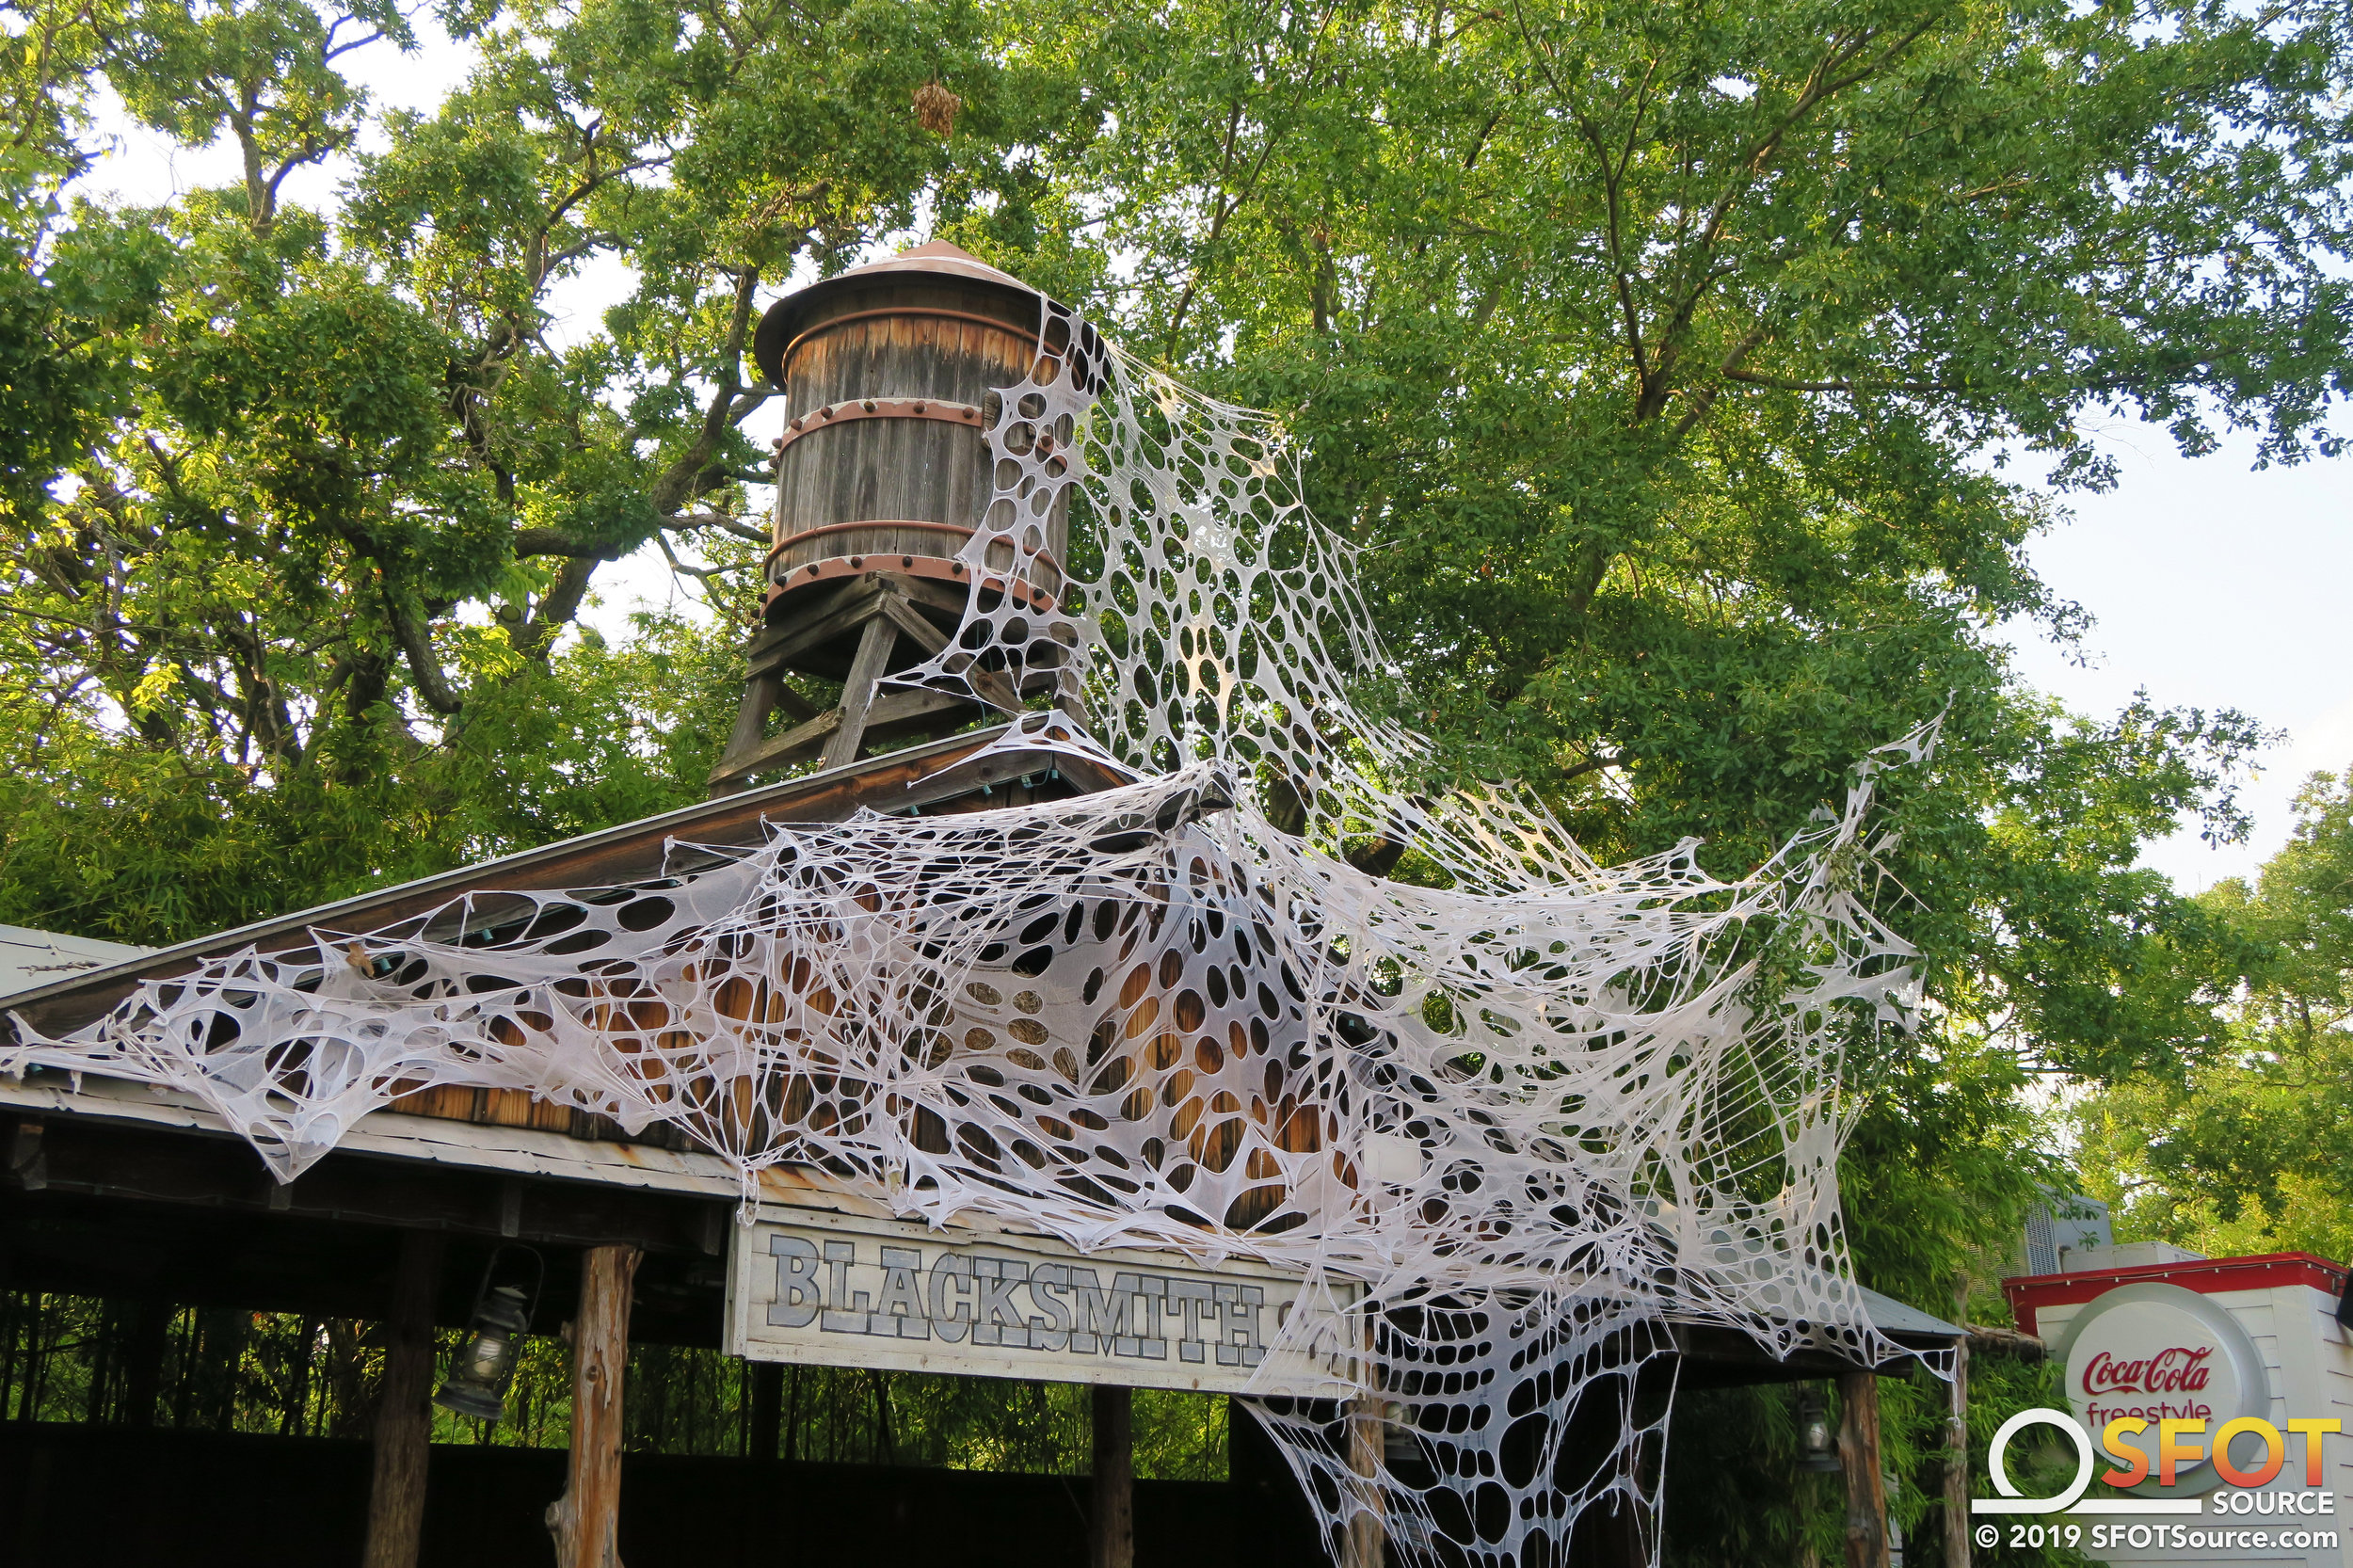 Spider webs are present throughout various parts of the Texas section.